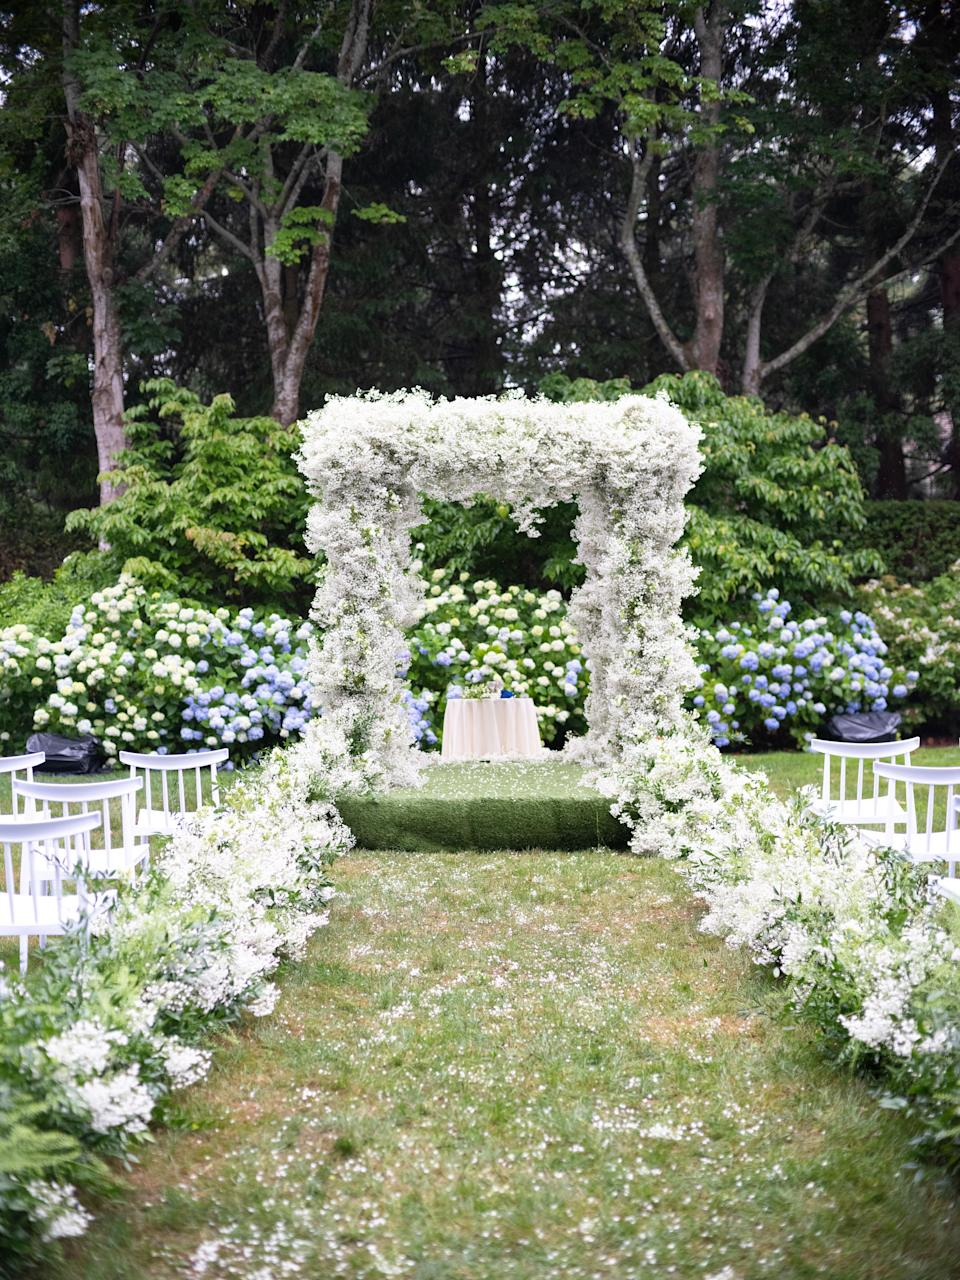 The rain blew the baby's breath from the chuppah all over the backyard. The aftermath was magical.